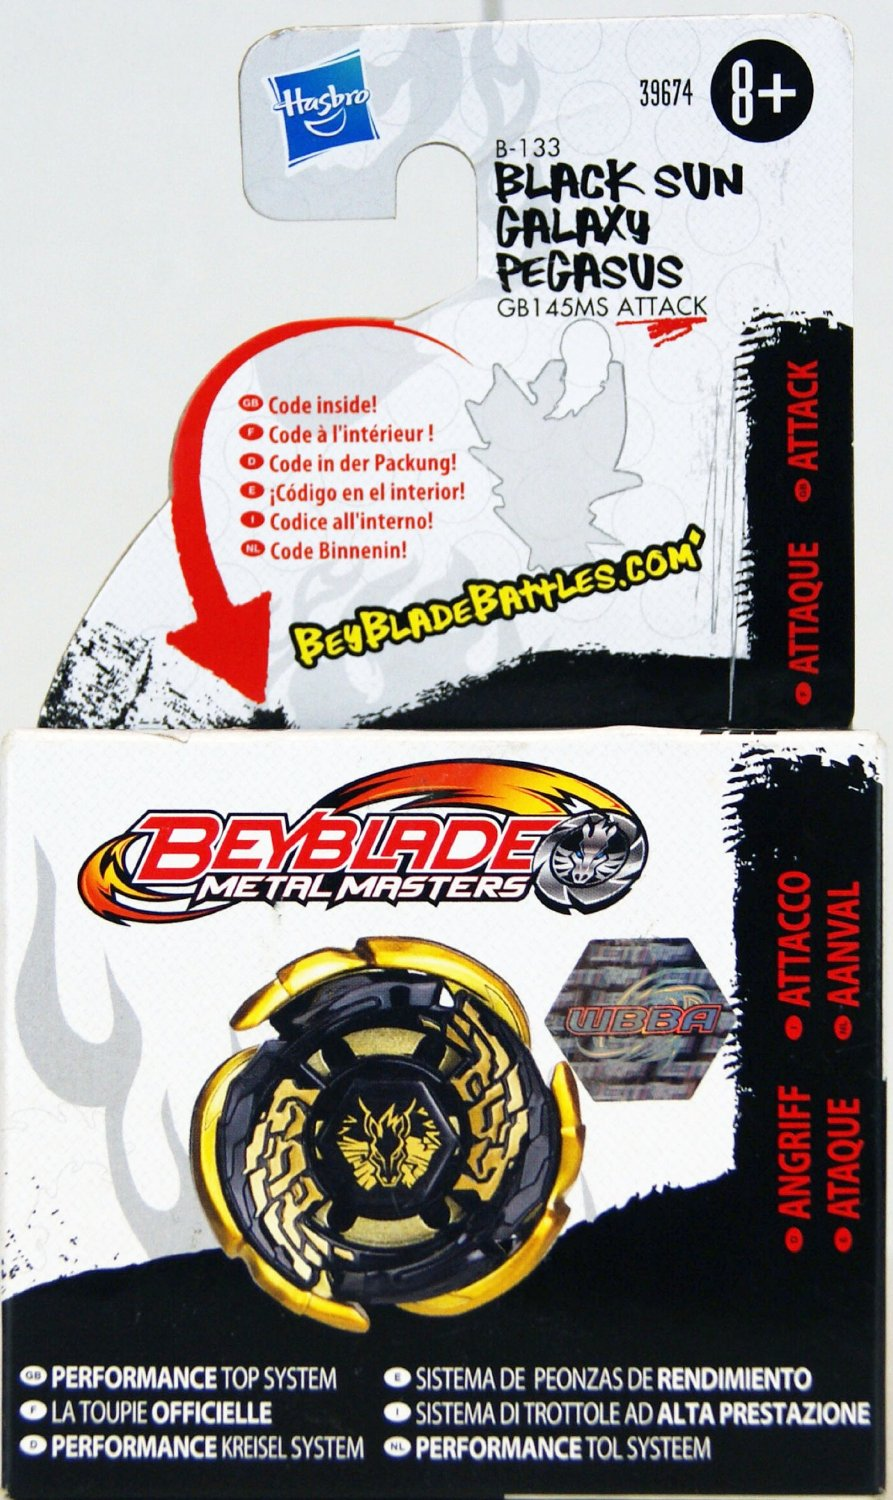 Beyblade - Metal Masters - Attack Battle Top #B133 - LIMITED COLLECTORS EDITION - Black Sun Galaxy Pegasus GB145MS Attack